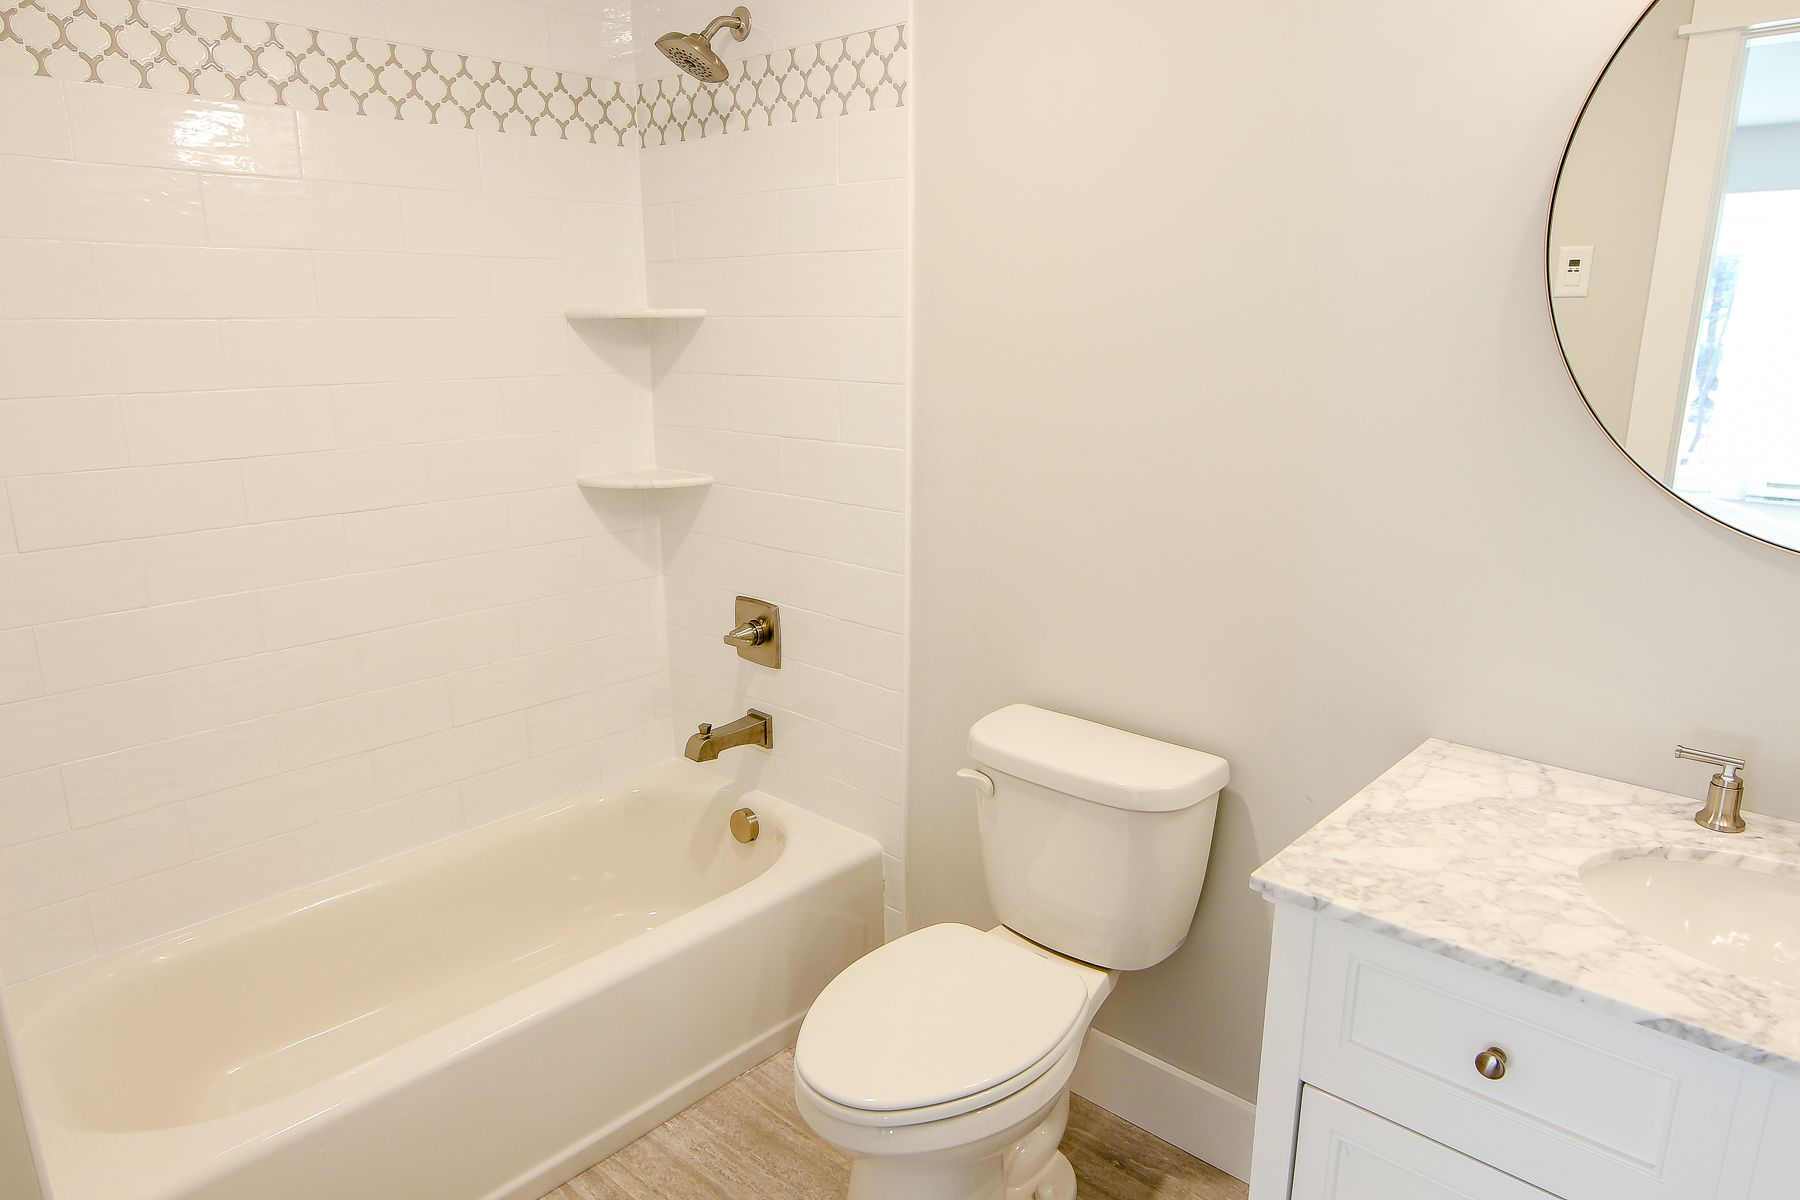 Bathroom featured in The Fairway By Realty Promotions, Inc. in Orange County, NY